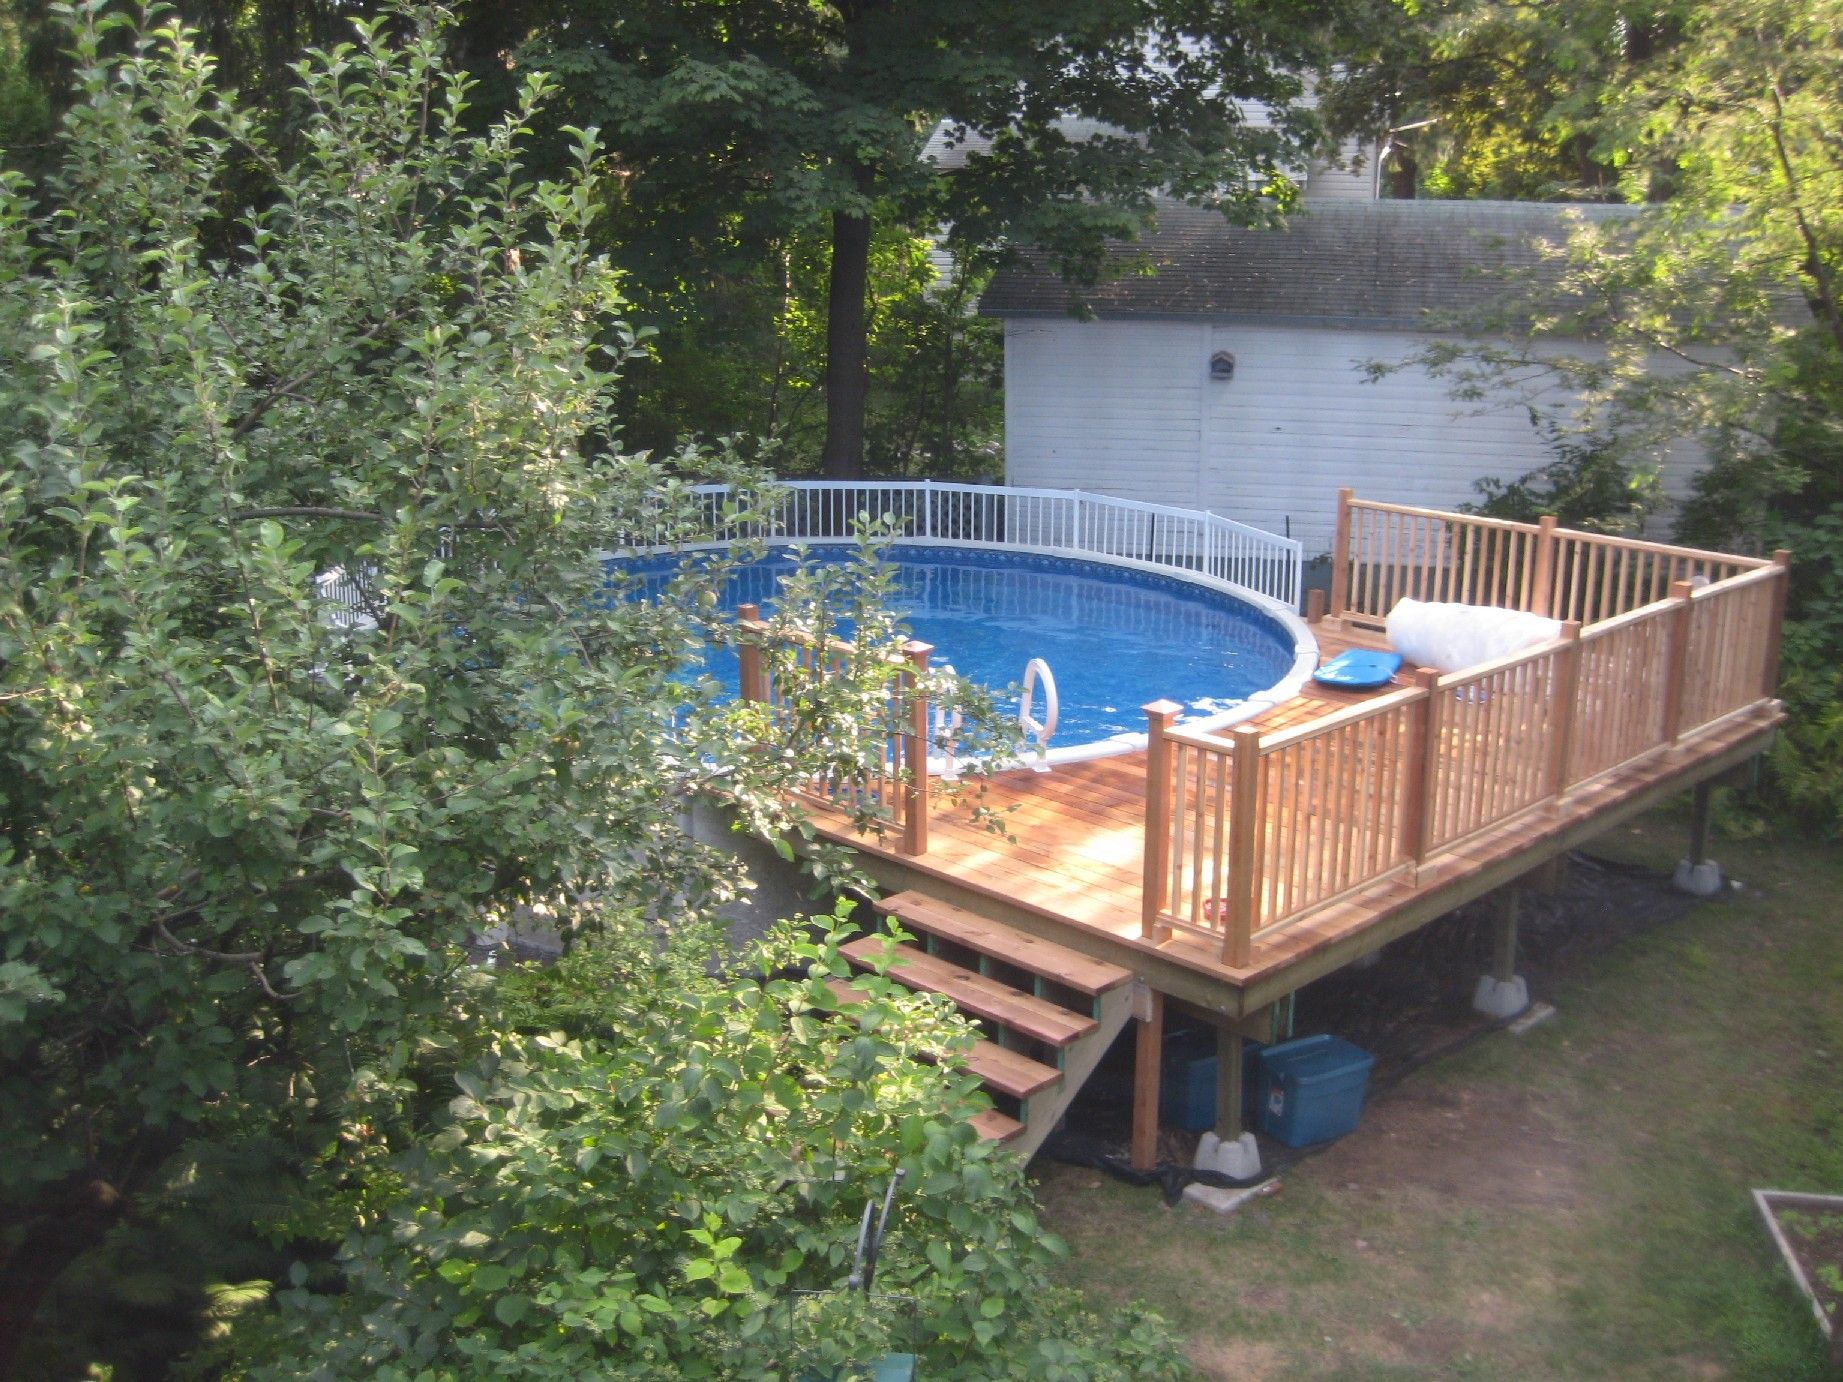 Deck Design Ideas For Above Ground Pools this above ground pool is built uneven ground and uses that to extend a deck Above Ground Pool Decks Idea For Your Backyard Decor Round Above Ground Pool Decks Fro